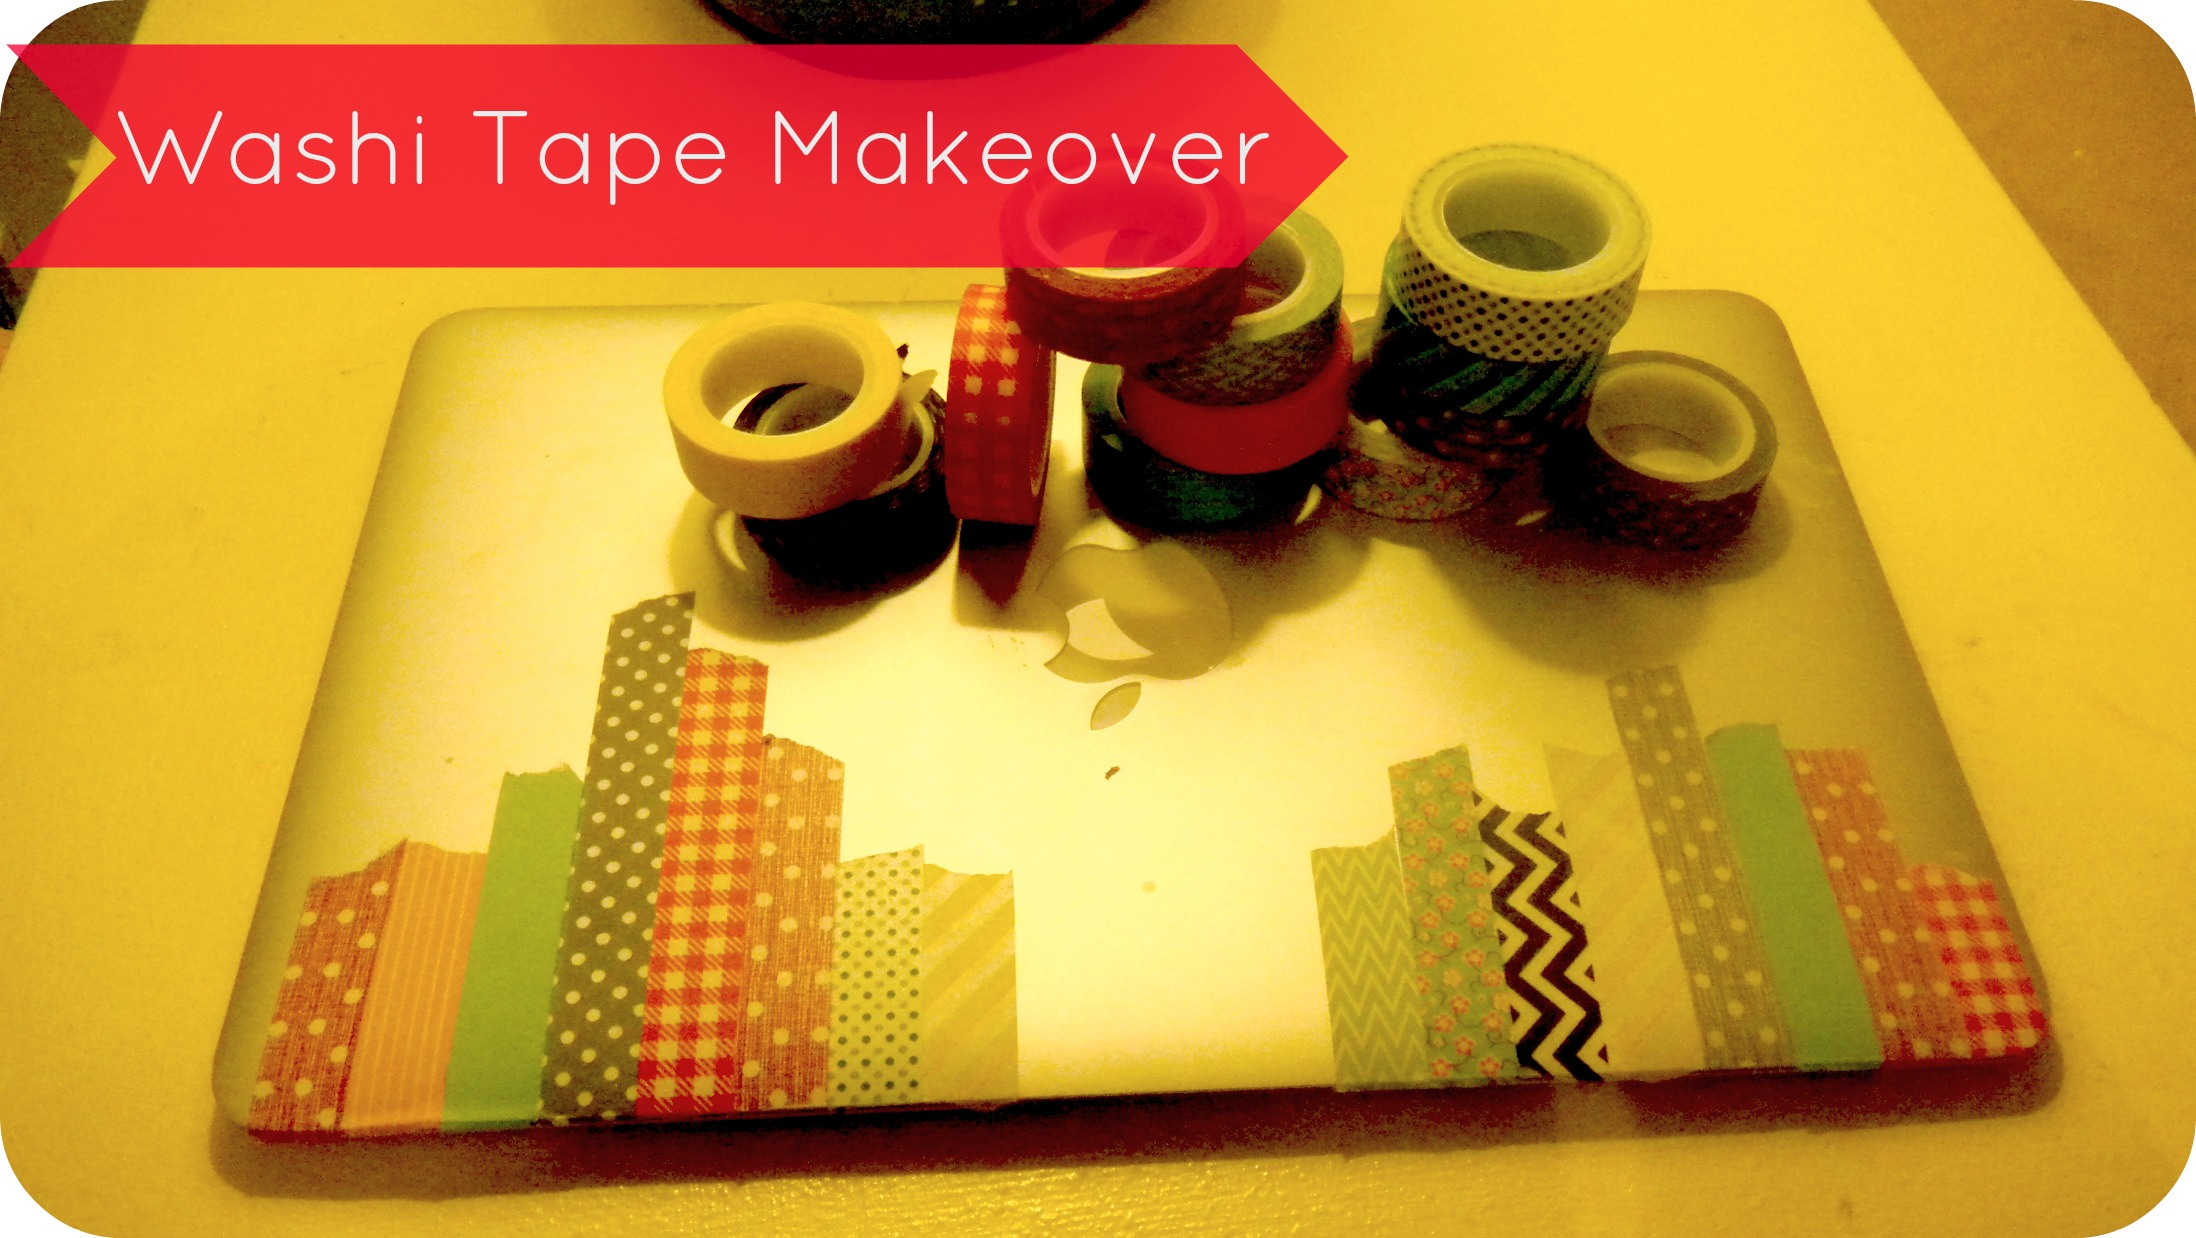 washitapemakeover Washi Tape Laptop Makeover